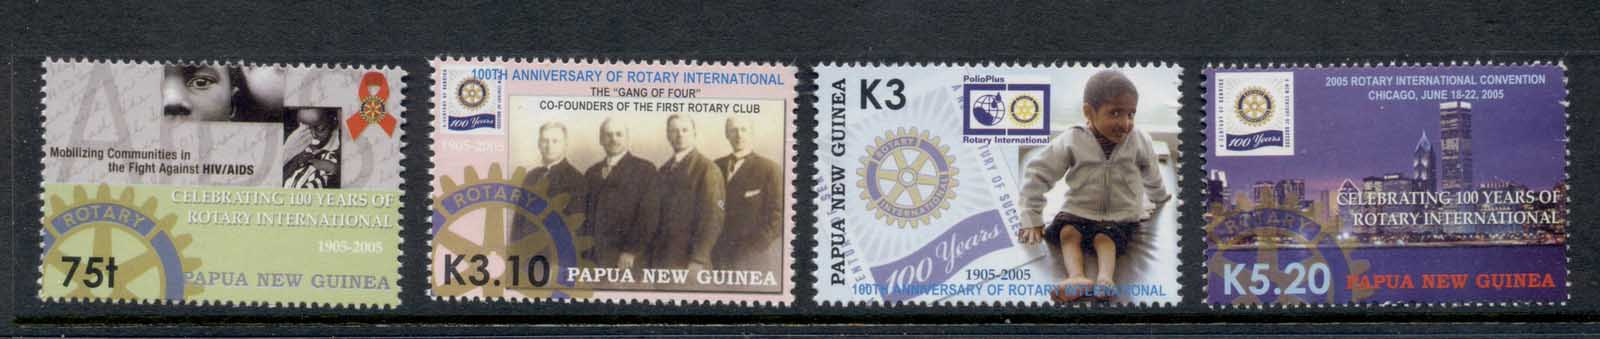 PNG 2007 Rotary International MUH